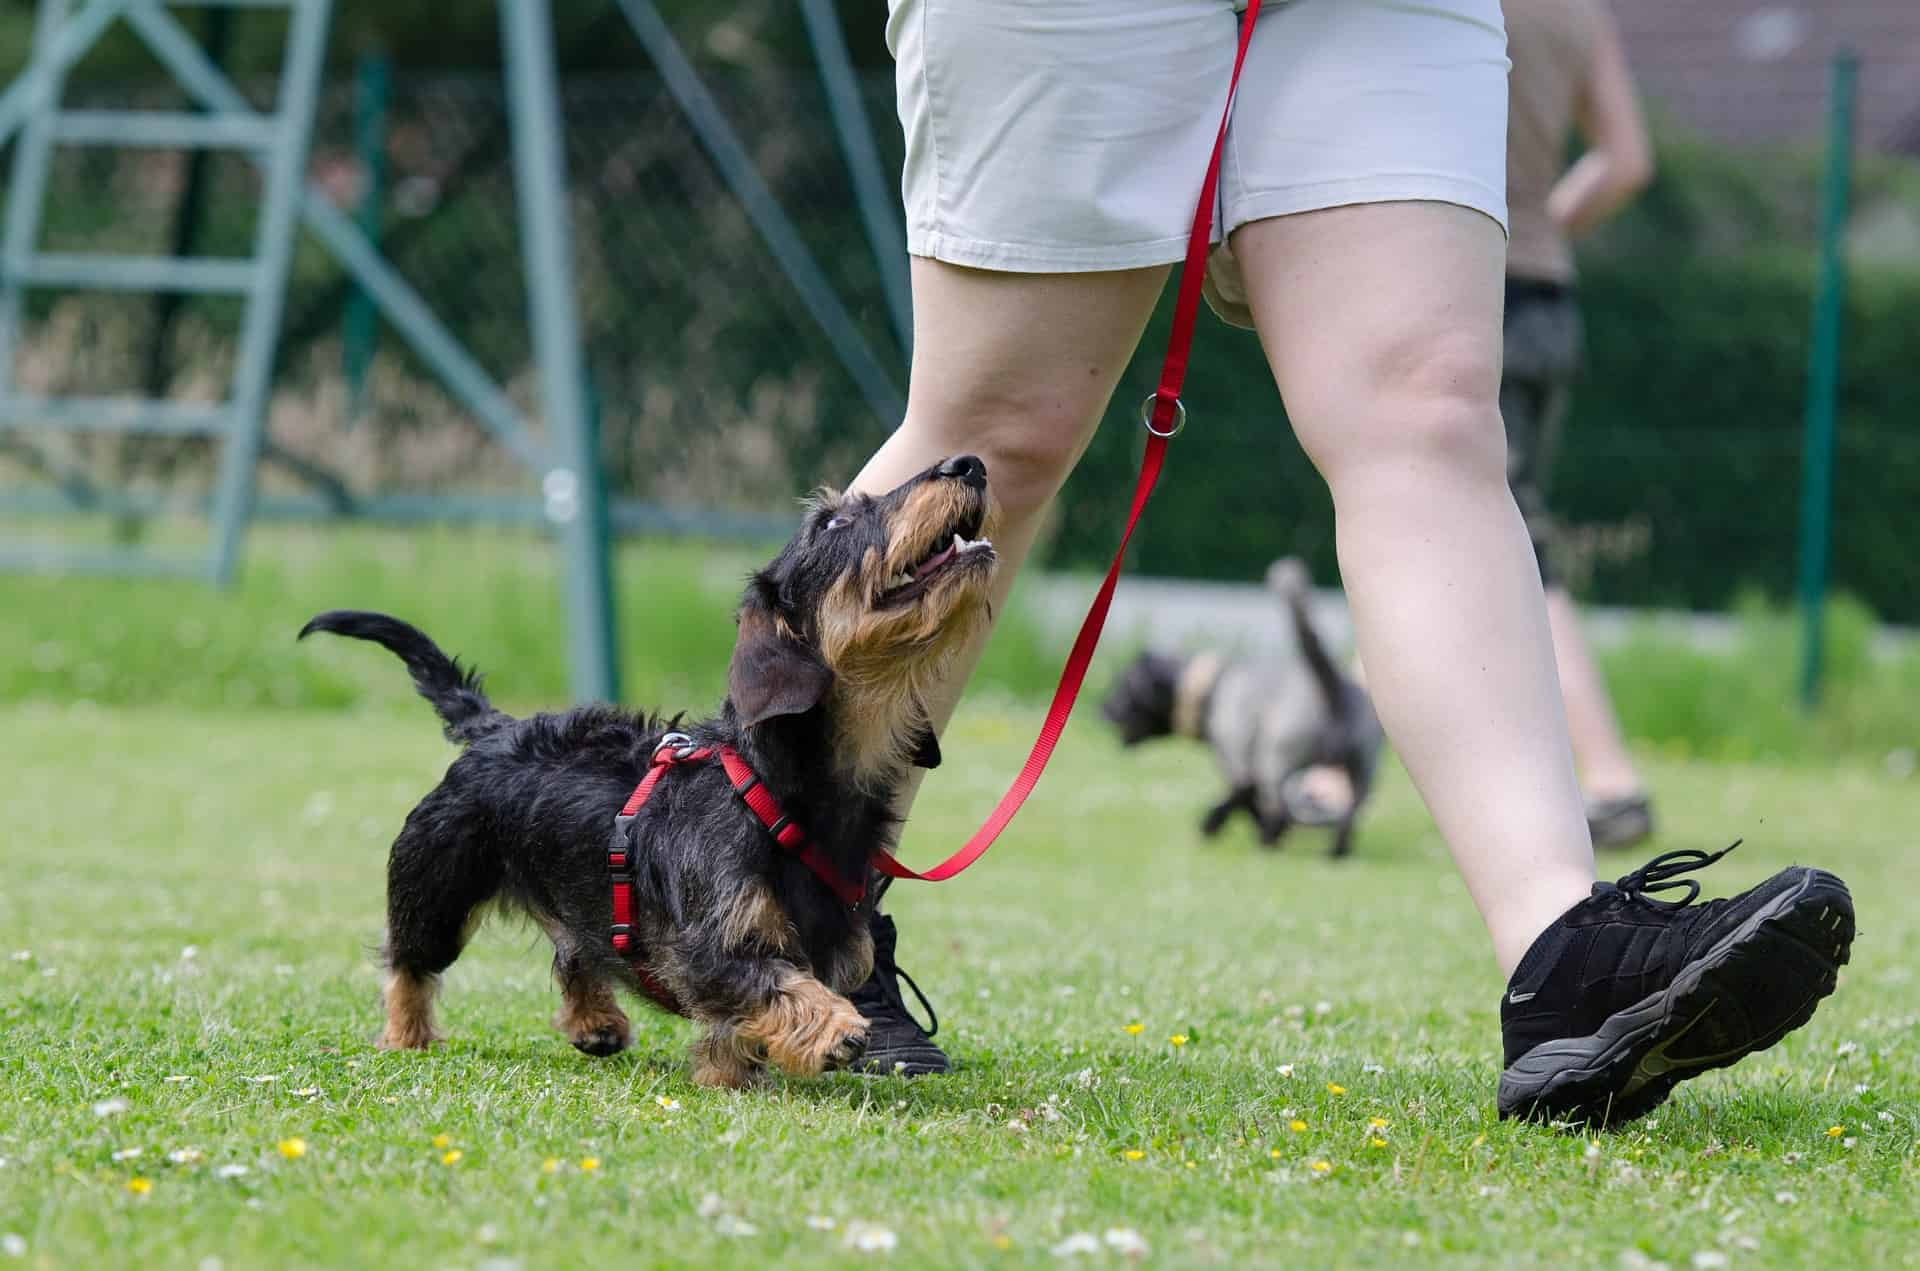 Small black and tan dachshund wearing a red harness and red leash being walked on a field with an owner wearing black sneakers